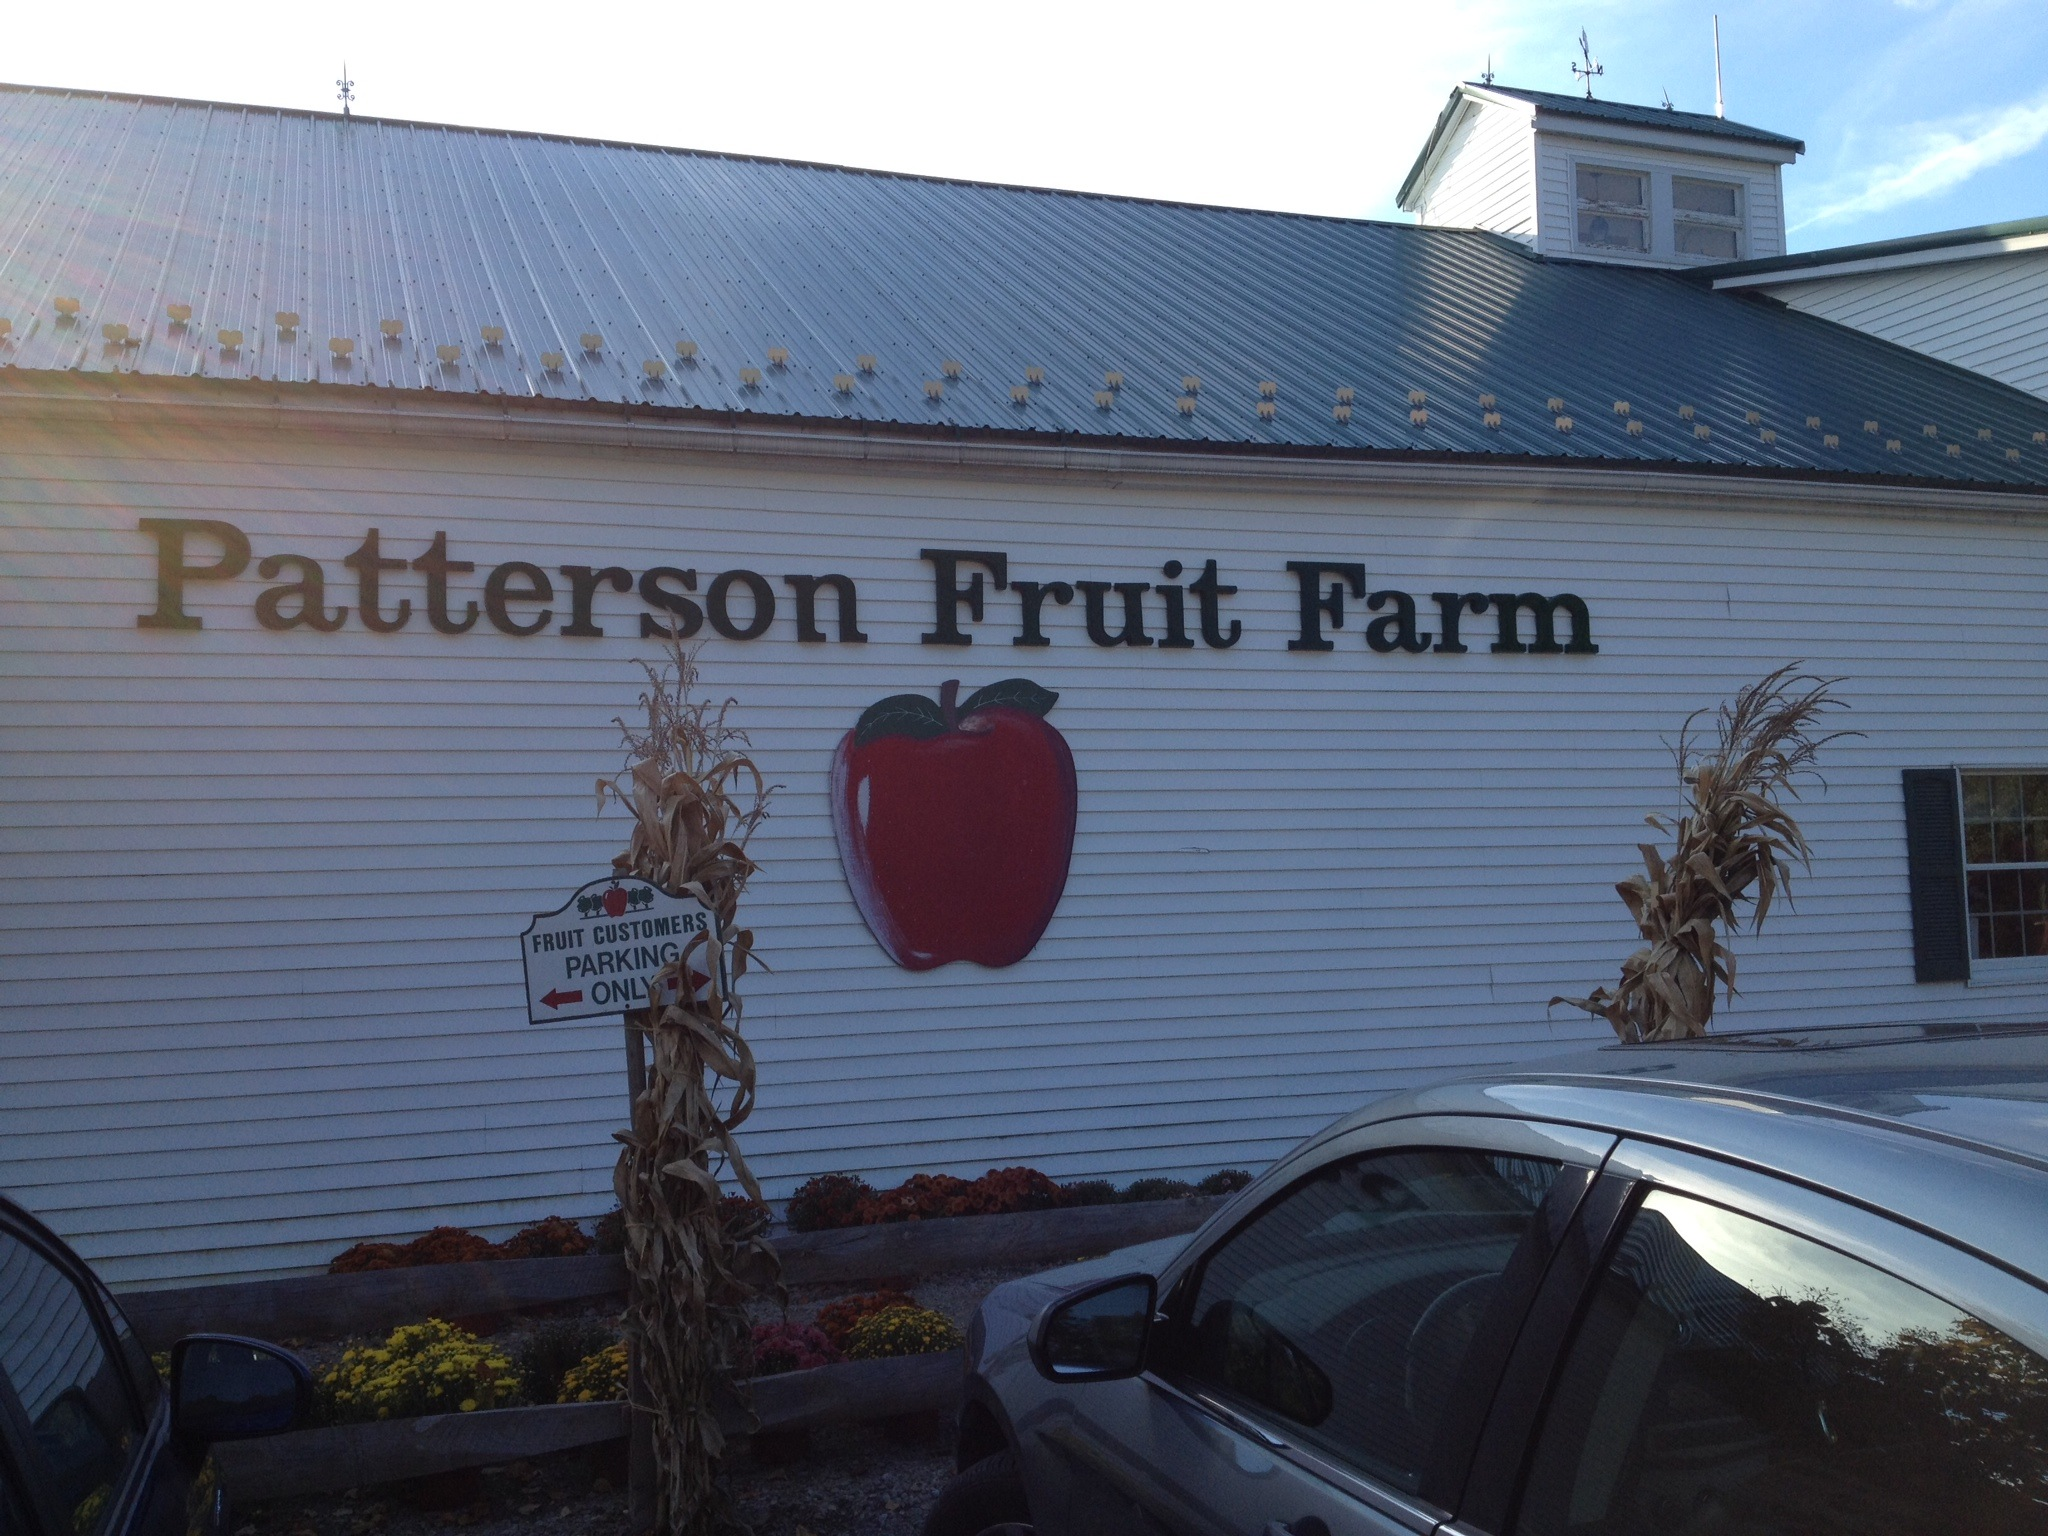 Patterson Fruit Farm